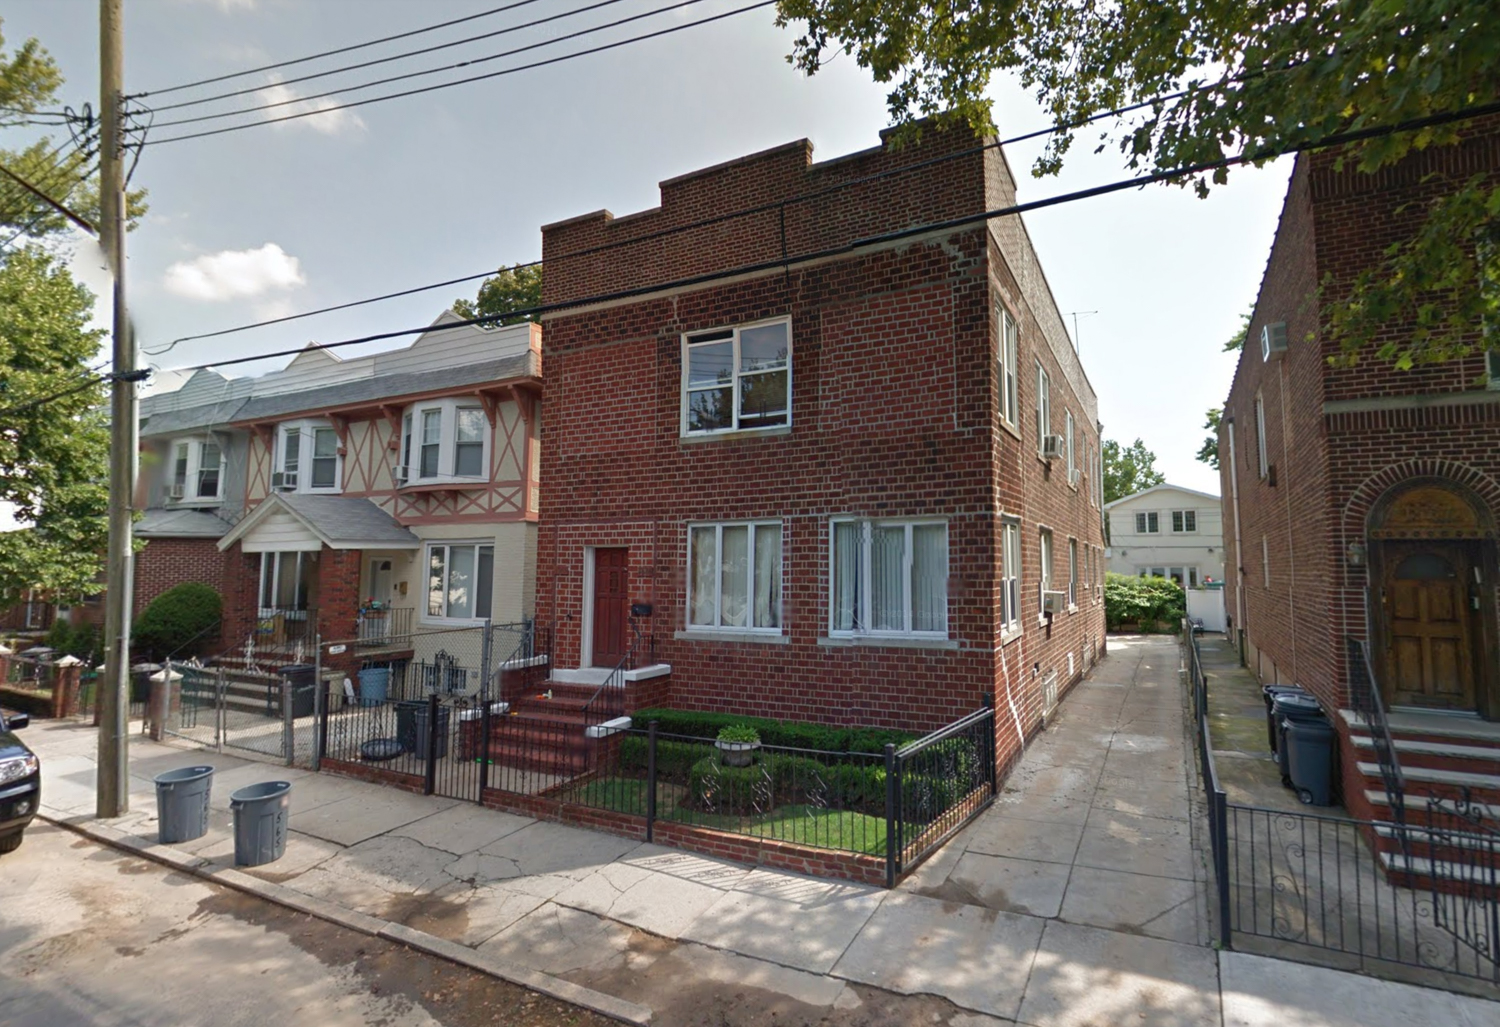 1565 East 9th Street, via Google Maps